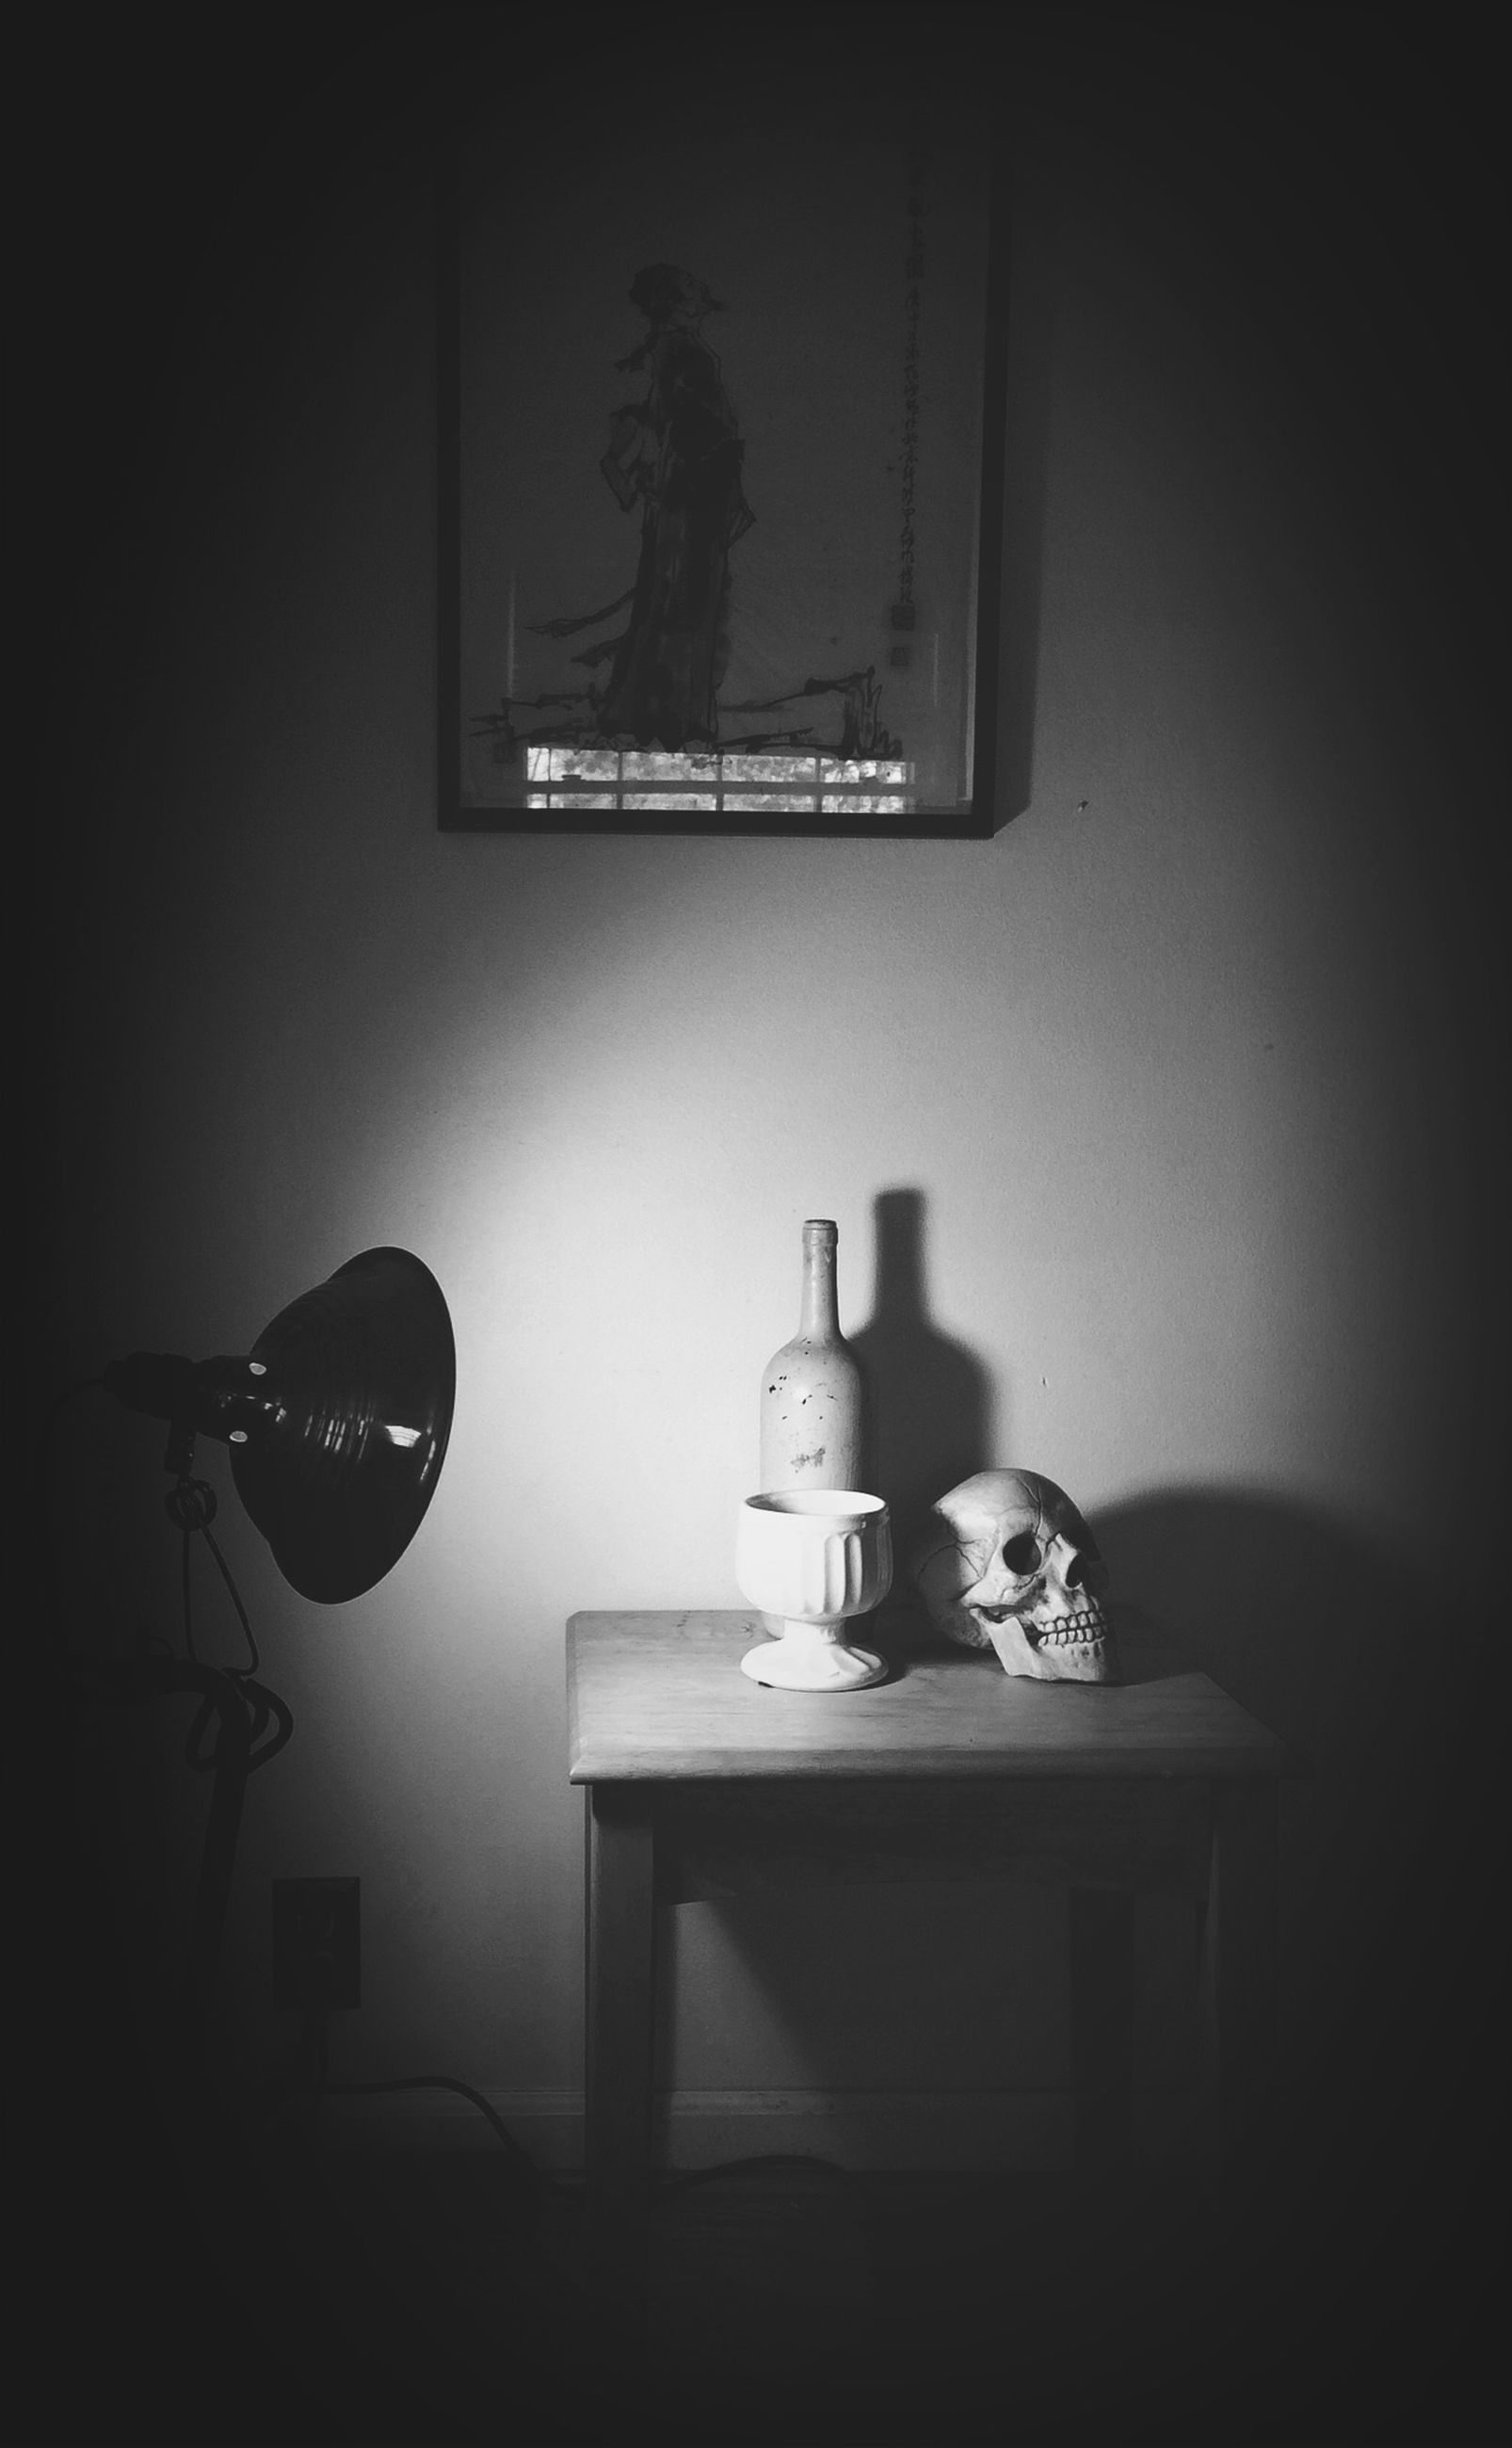 indoors, home interior, table, domestic room, wall - building feature, still life, electric lamp, domestic life, home, picture frame, house, room, lighting equipment, window, illuminated, copy space, technology, no people, chair, darkroom